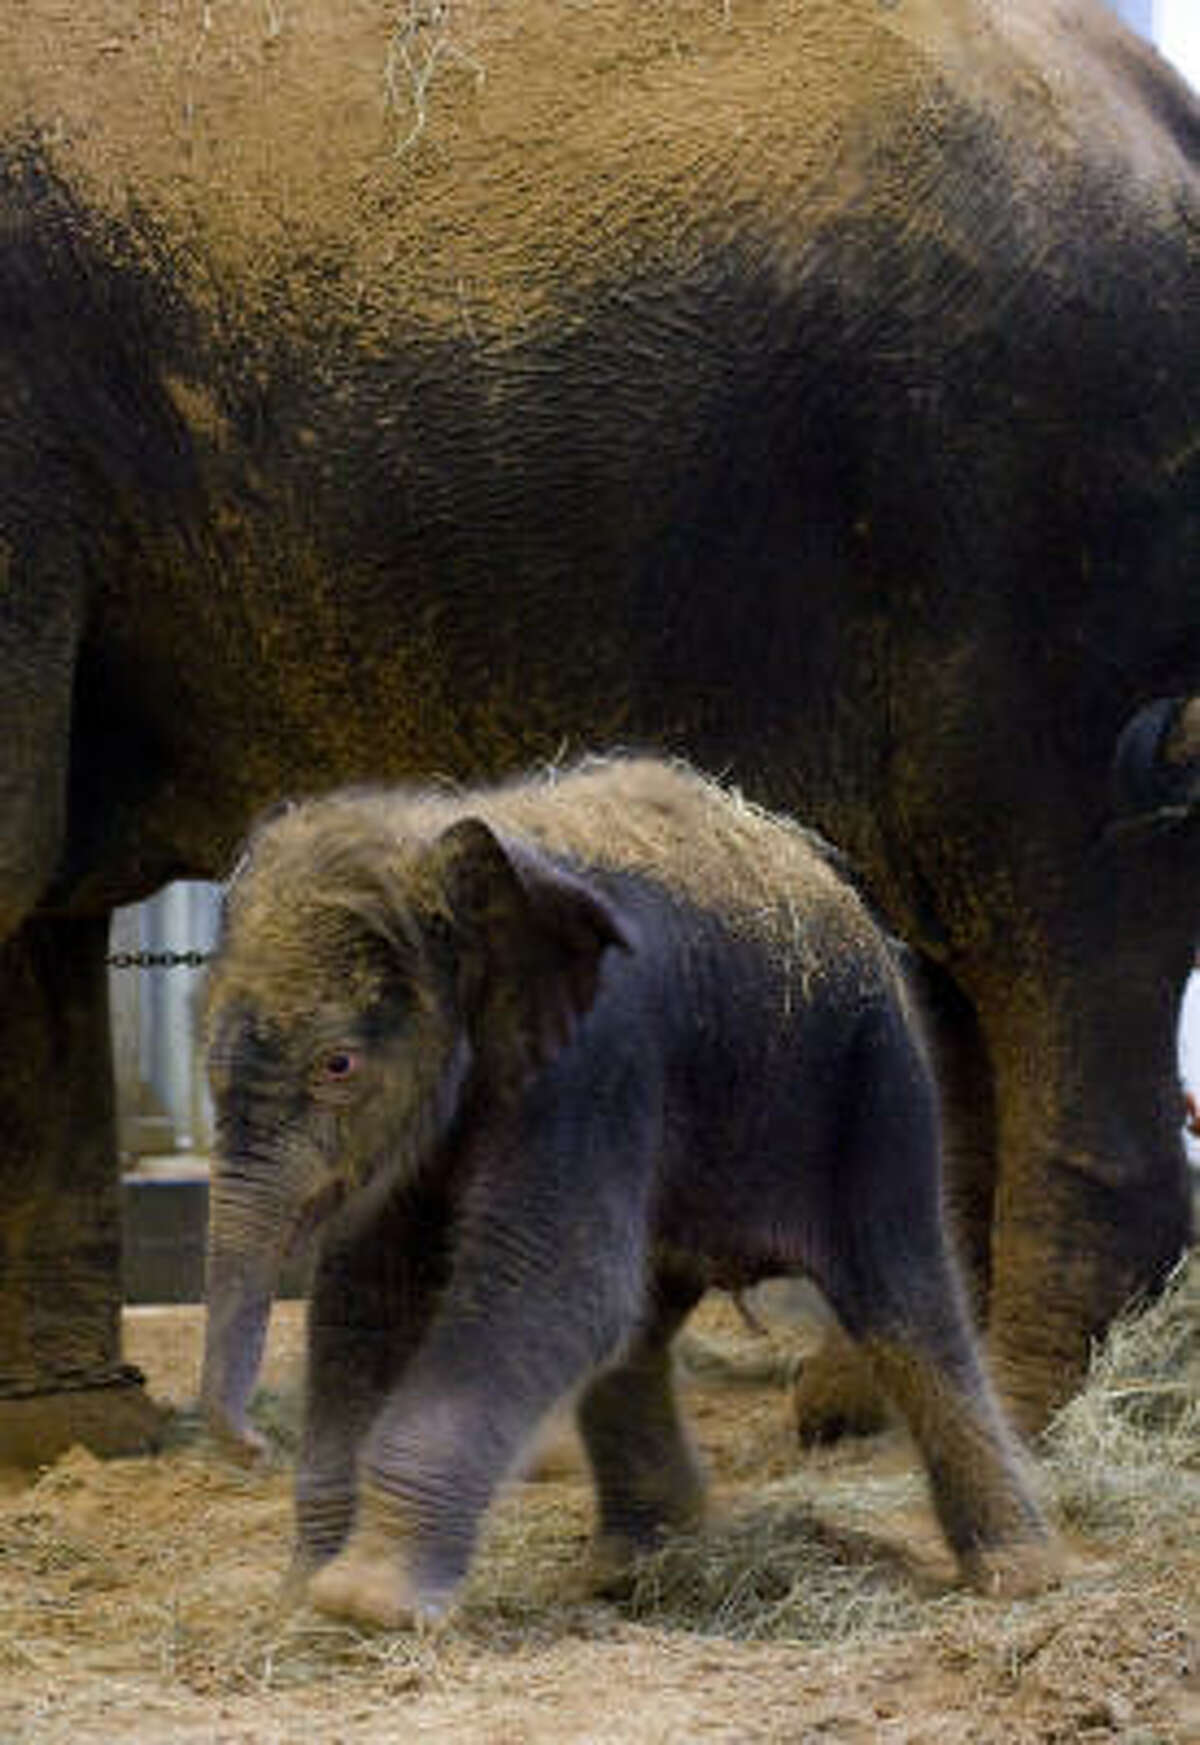 The calf has been named Baylor in recognition of the advances made by Baylor College of Medicine to significantly reduce the threat of a potentially lethal elephant herpes virus. ?• Zoo hopes baby is a survivor ?• Video: Watch baby Baylor's meal